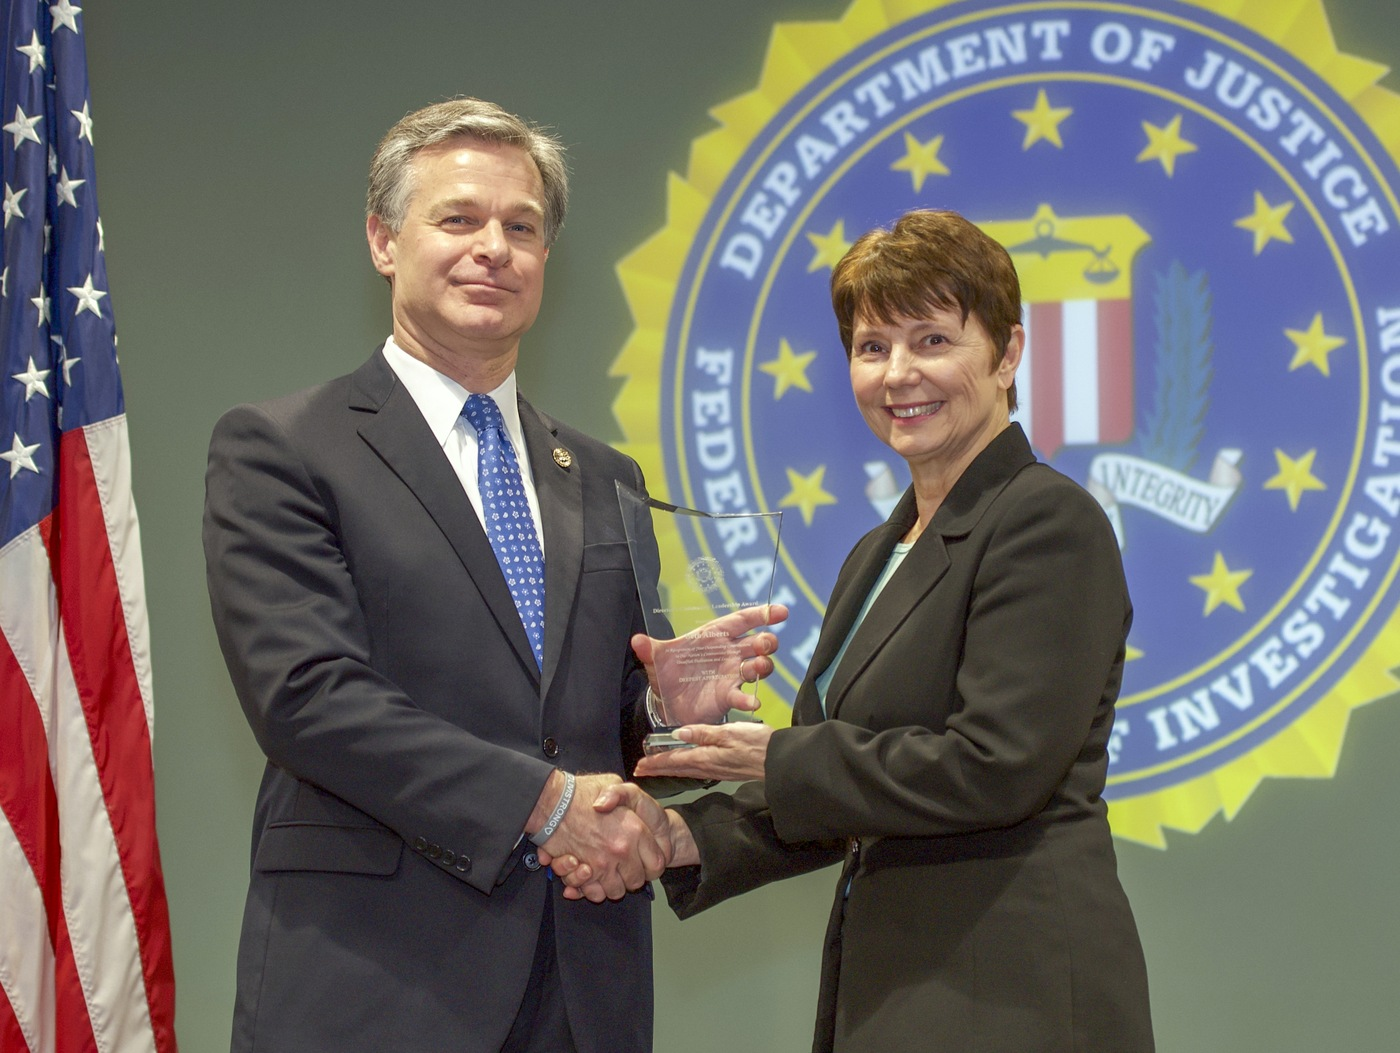 FBI Director Christopher Wray presents Houston Division recipient Beth Alberts with the Director's Community Leadership Award (DCLA) at a ceremony at FBI Headquarters on May 3, 2019.